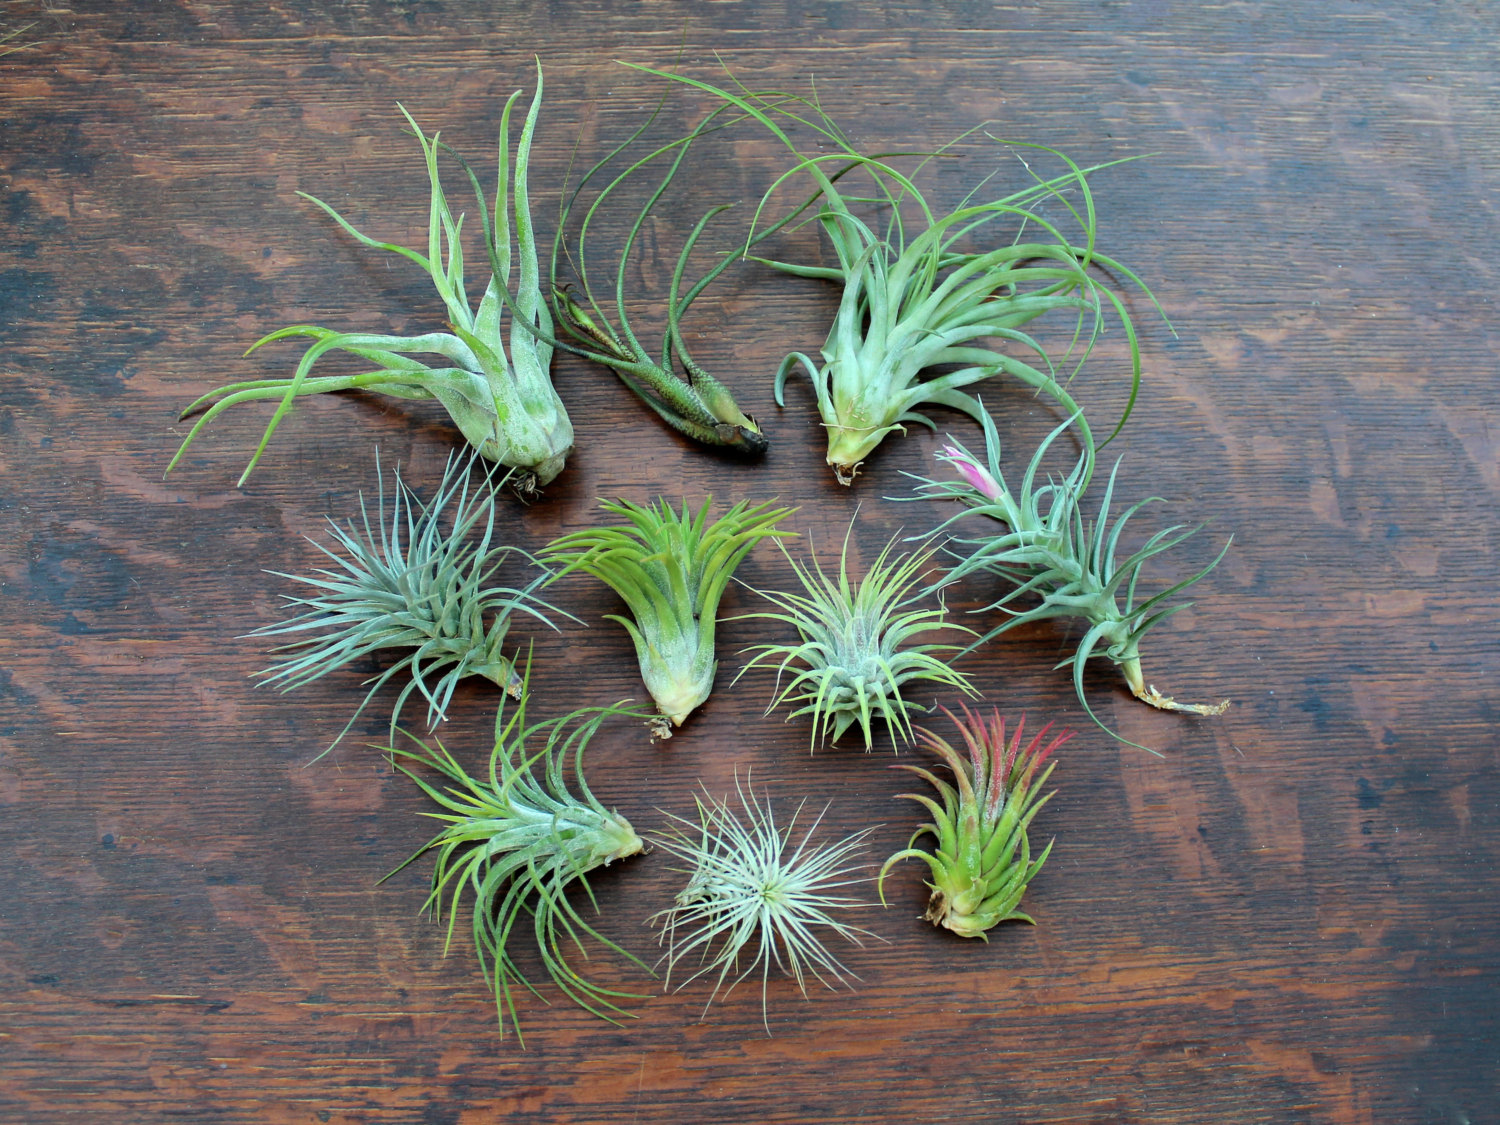 Assortment of air plants from Etsy shop Air Plant Design Studio